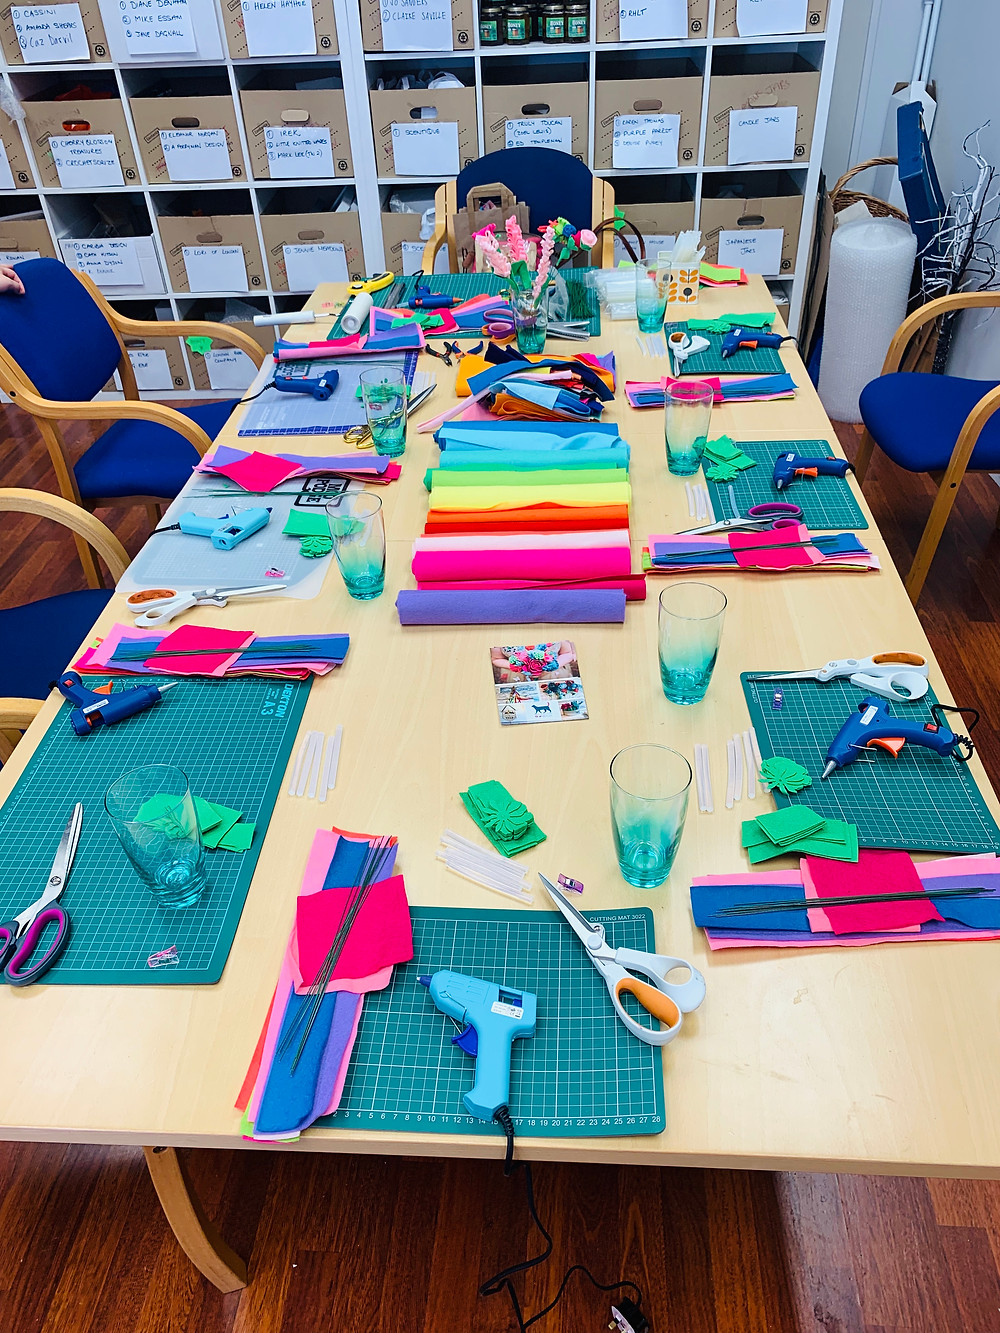 A table laid with felt and tools to make felt flowers